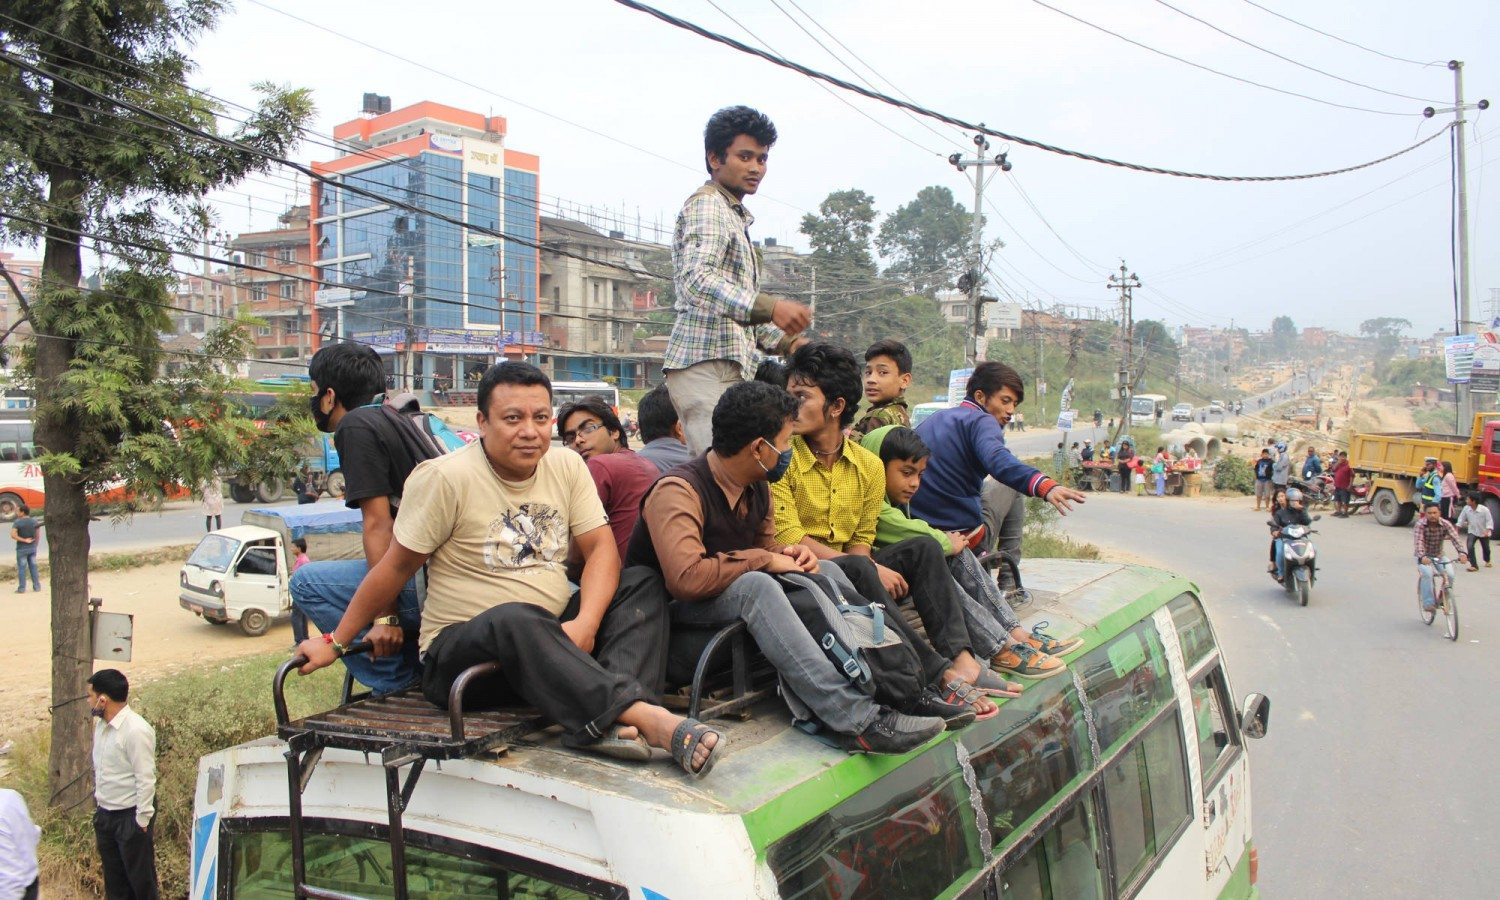 Commuters sit on the roof of a bus in Kathmandu during during the fuel crisis.